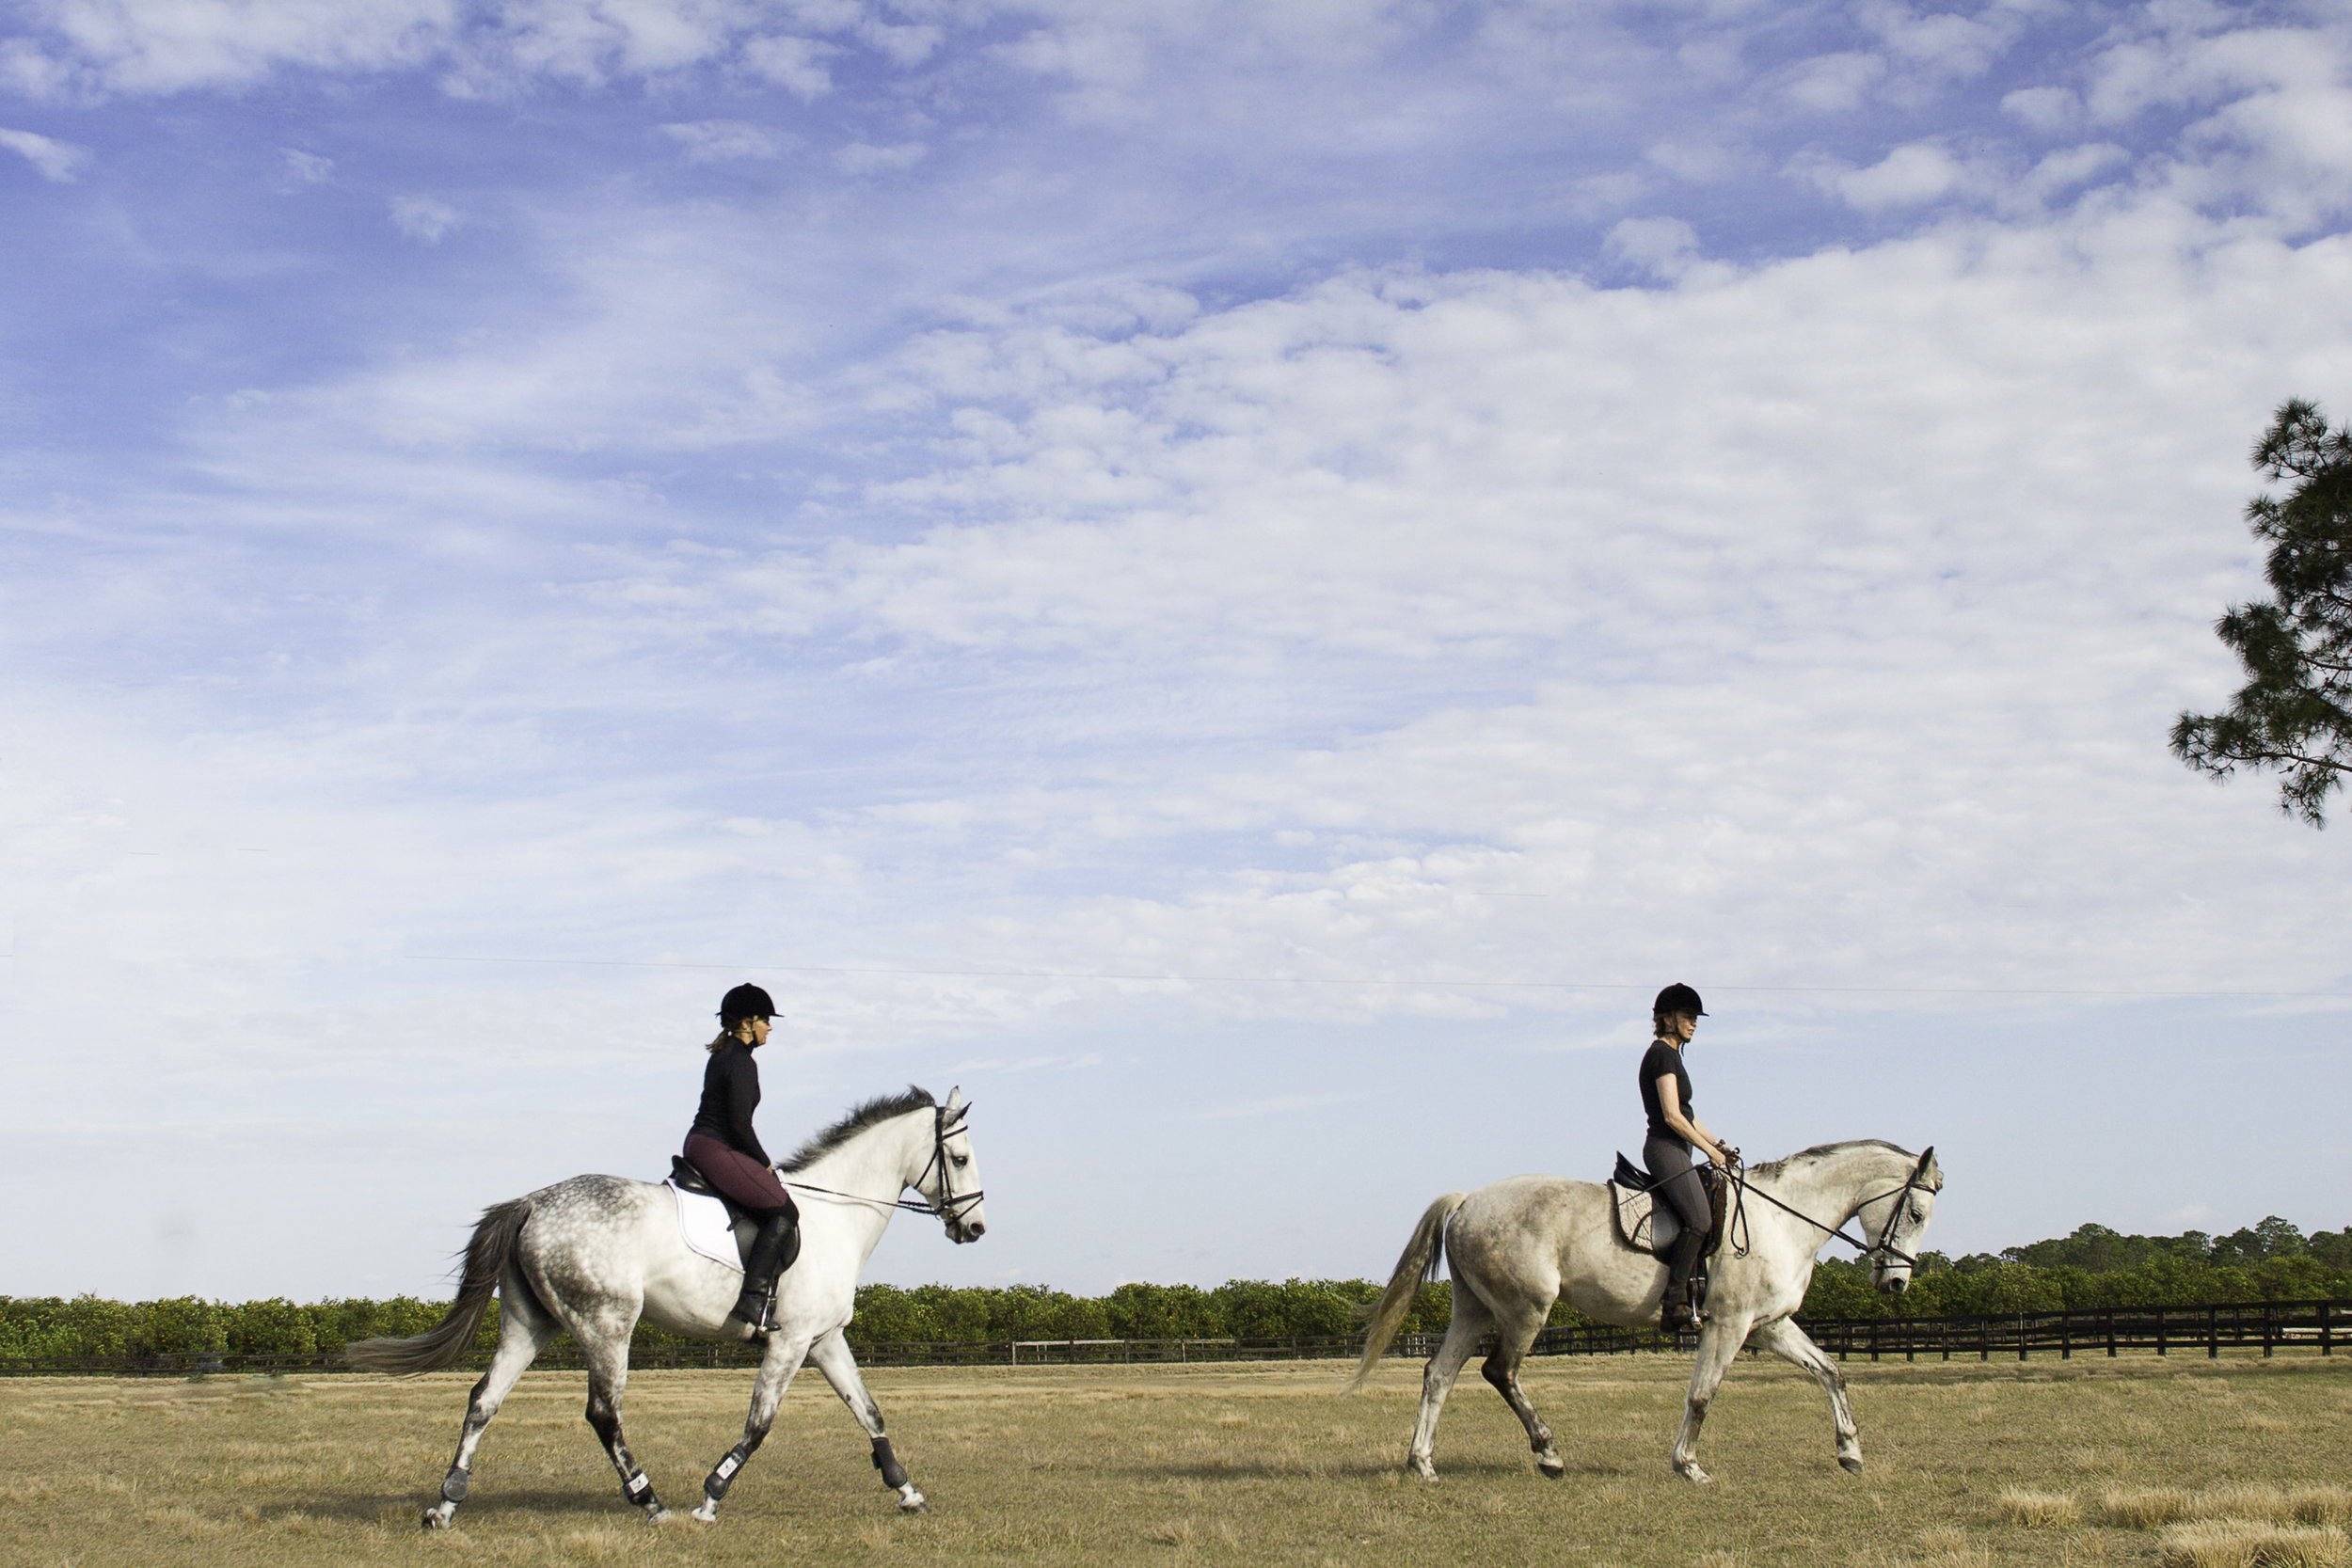 women_riding_horses_MG_0827_2.jpg